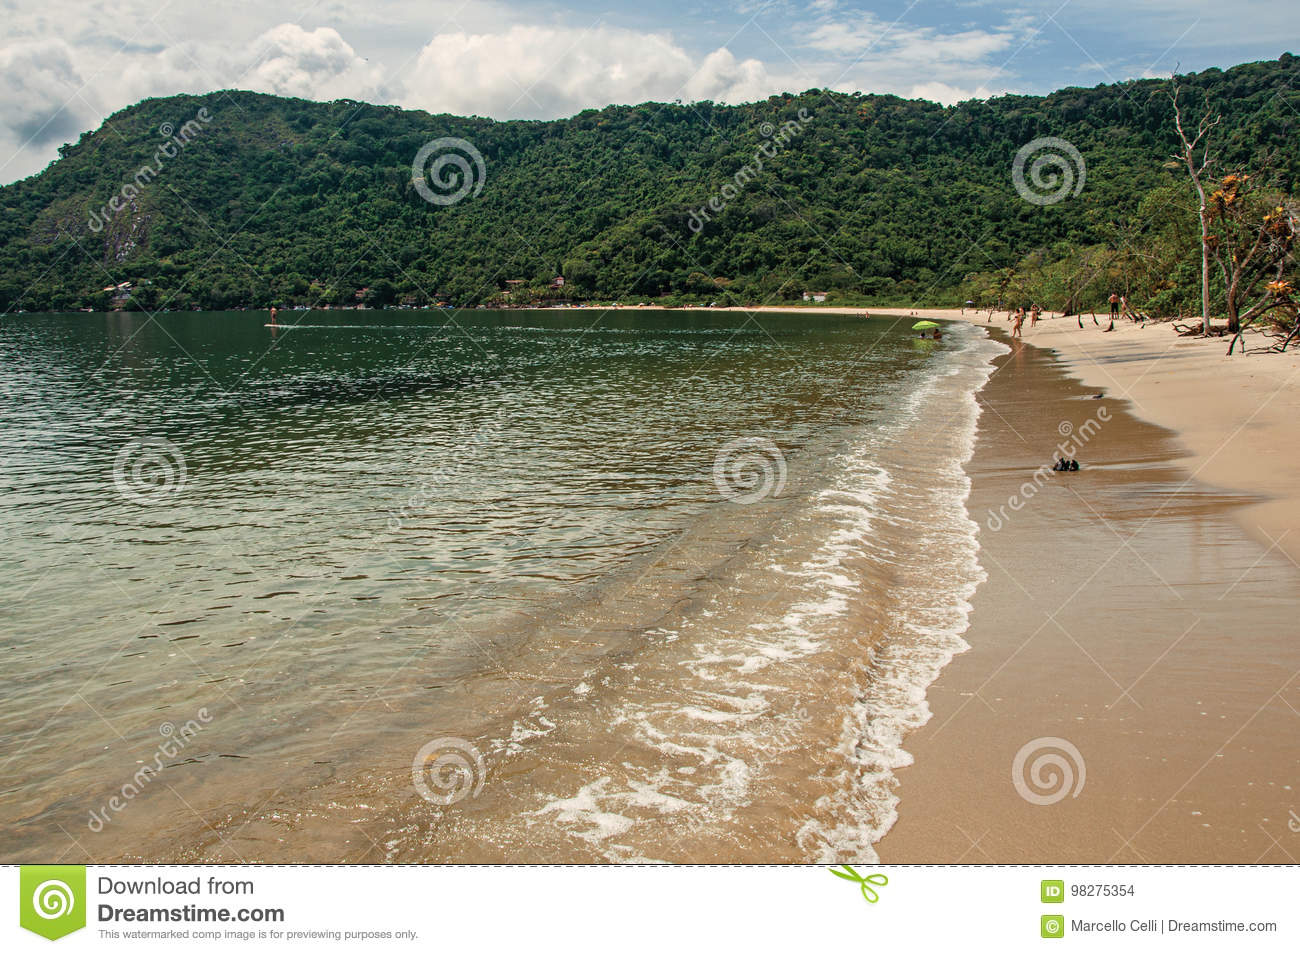 View of beach, sea and forest on cloudy day in Paraty Mirim.